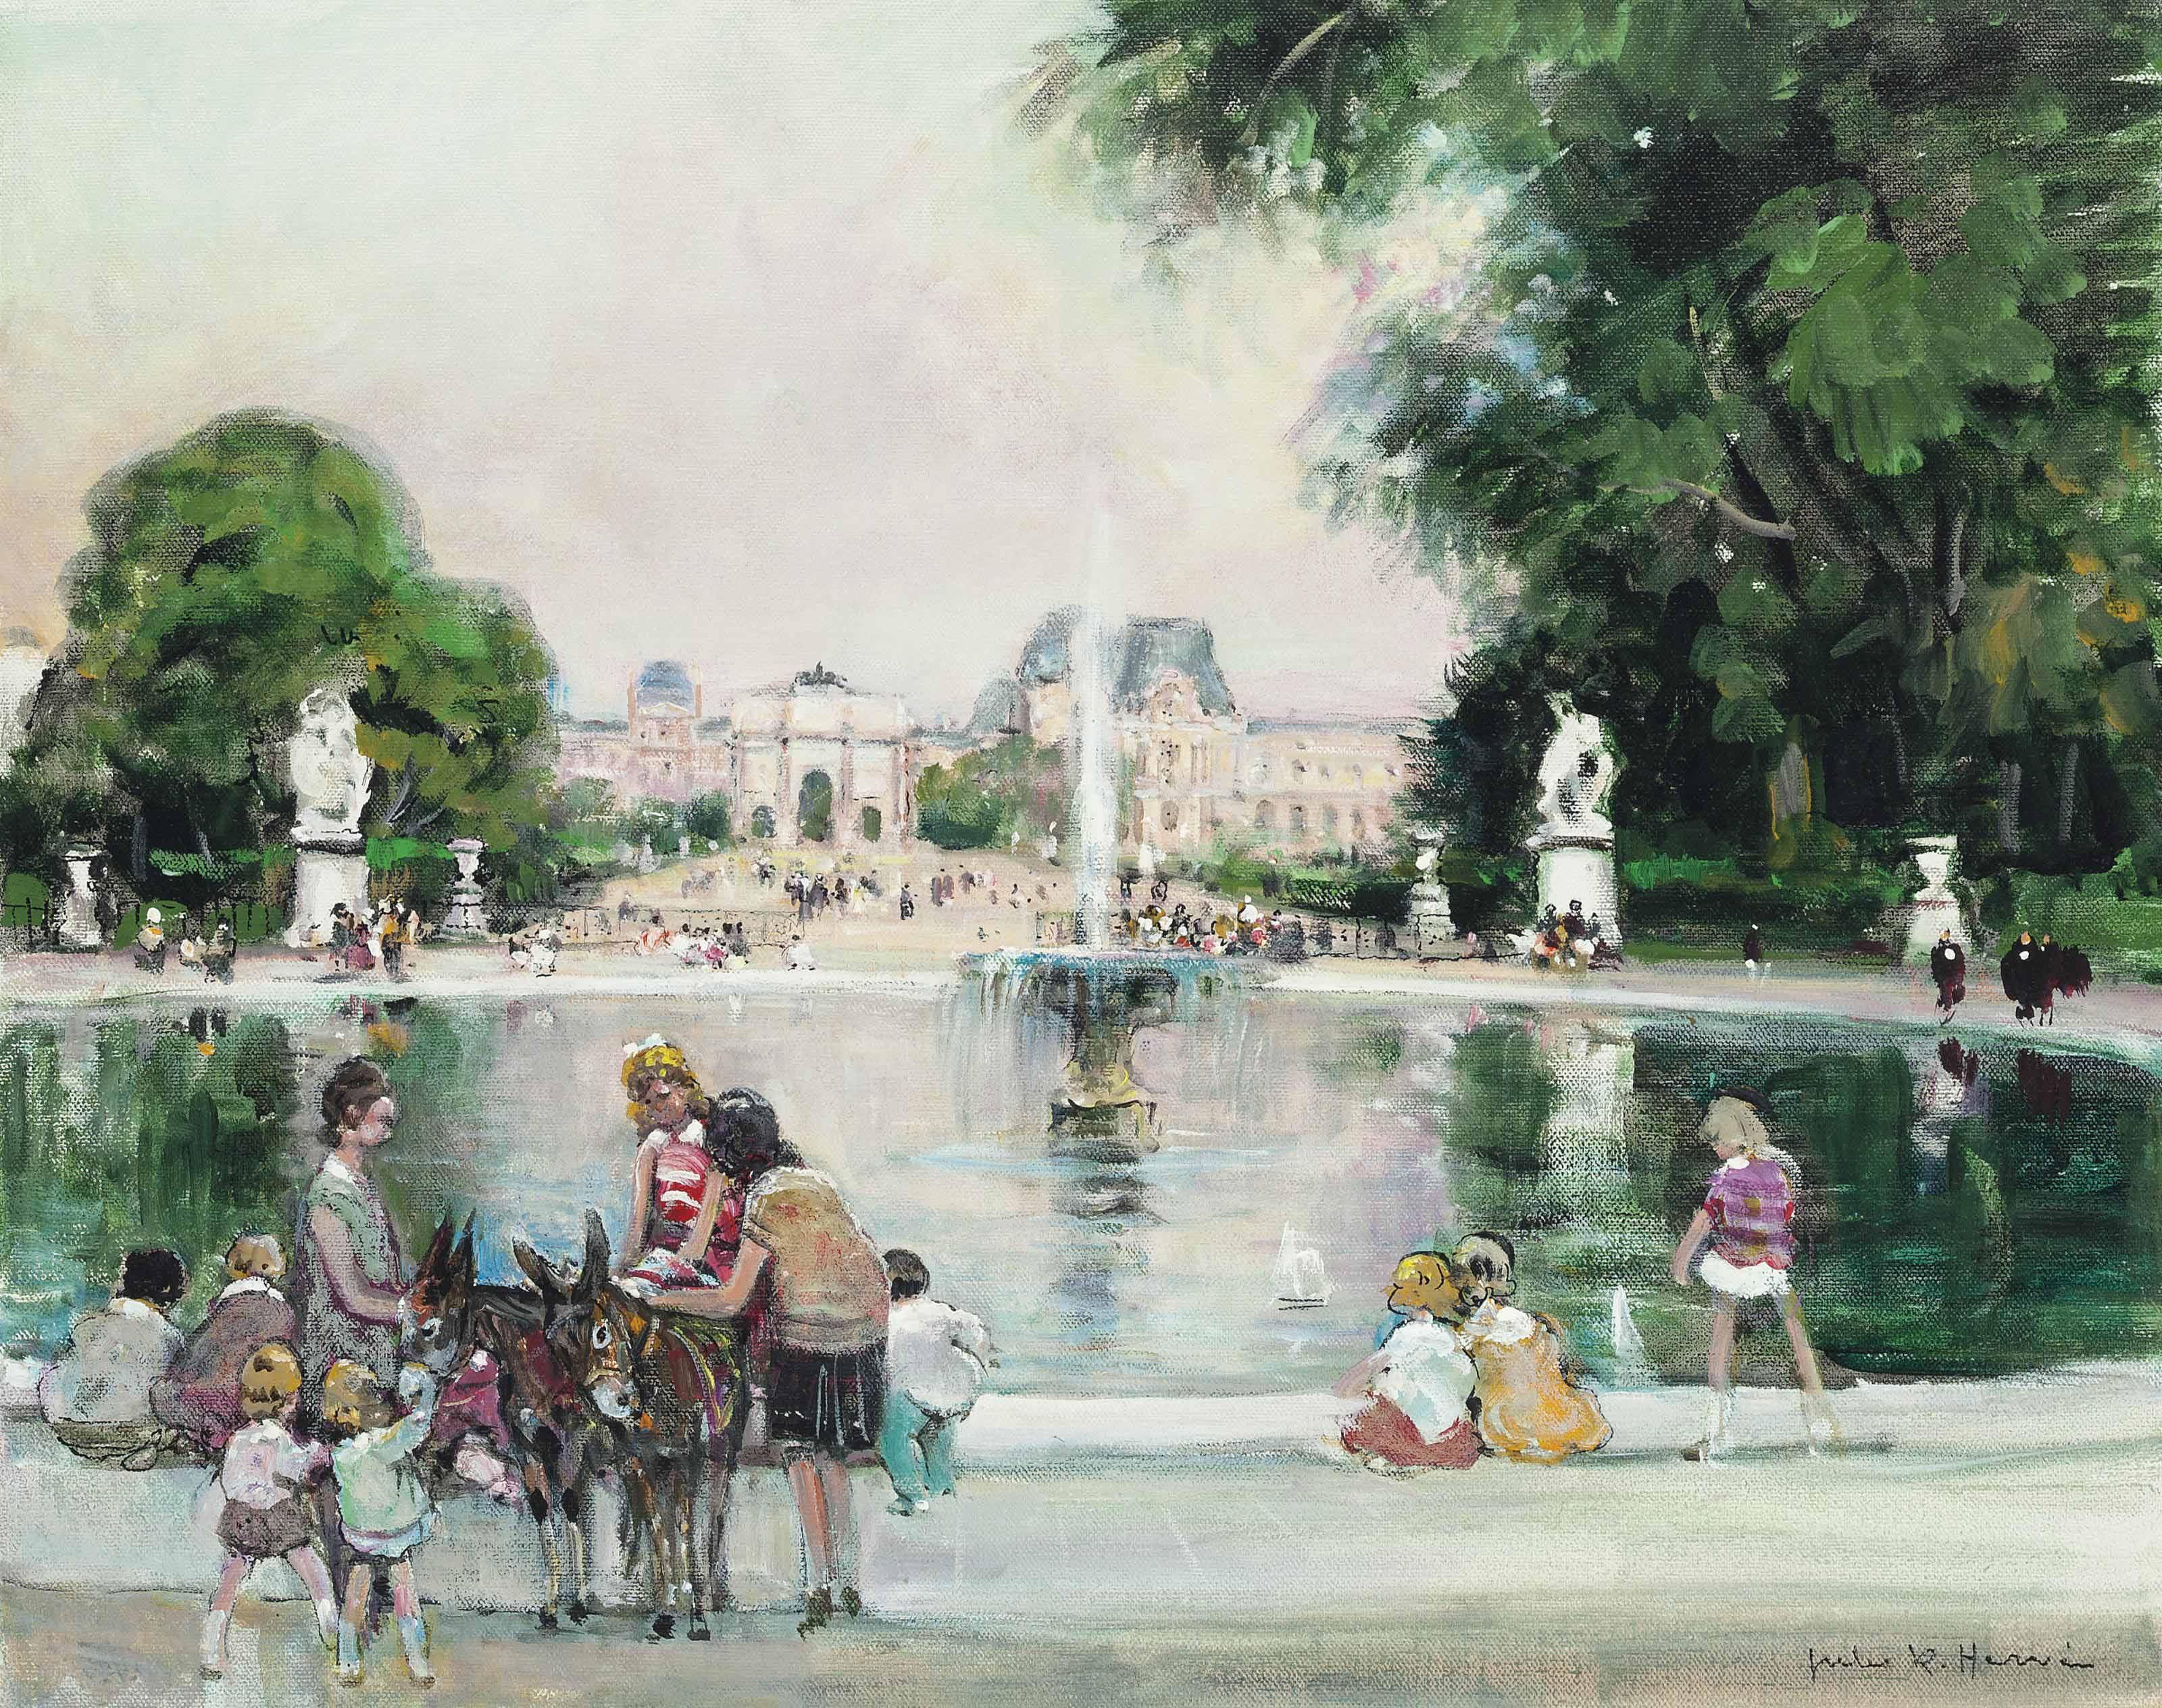 Grand bassin rond, Jardins de Tuileries, Paris